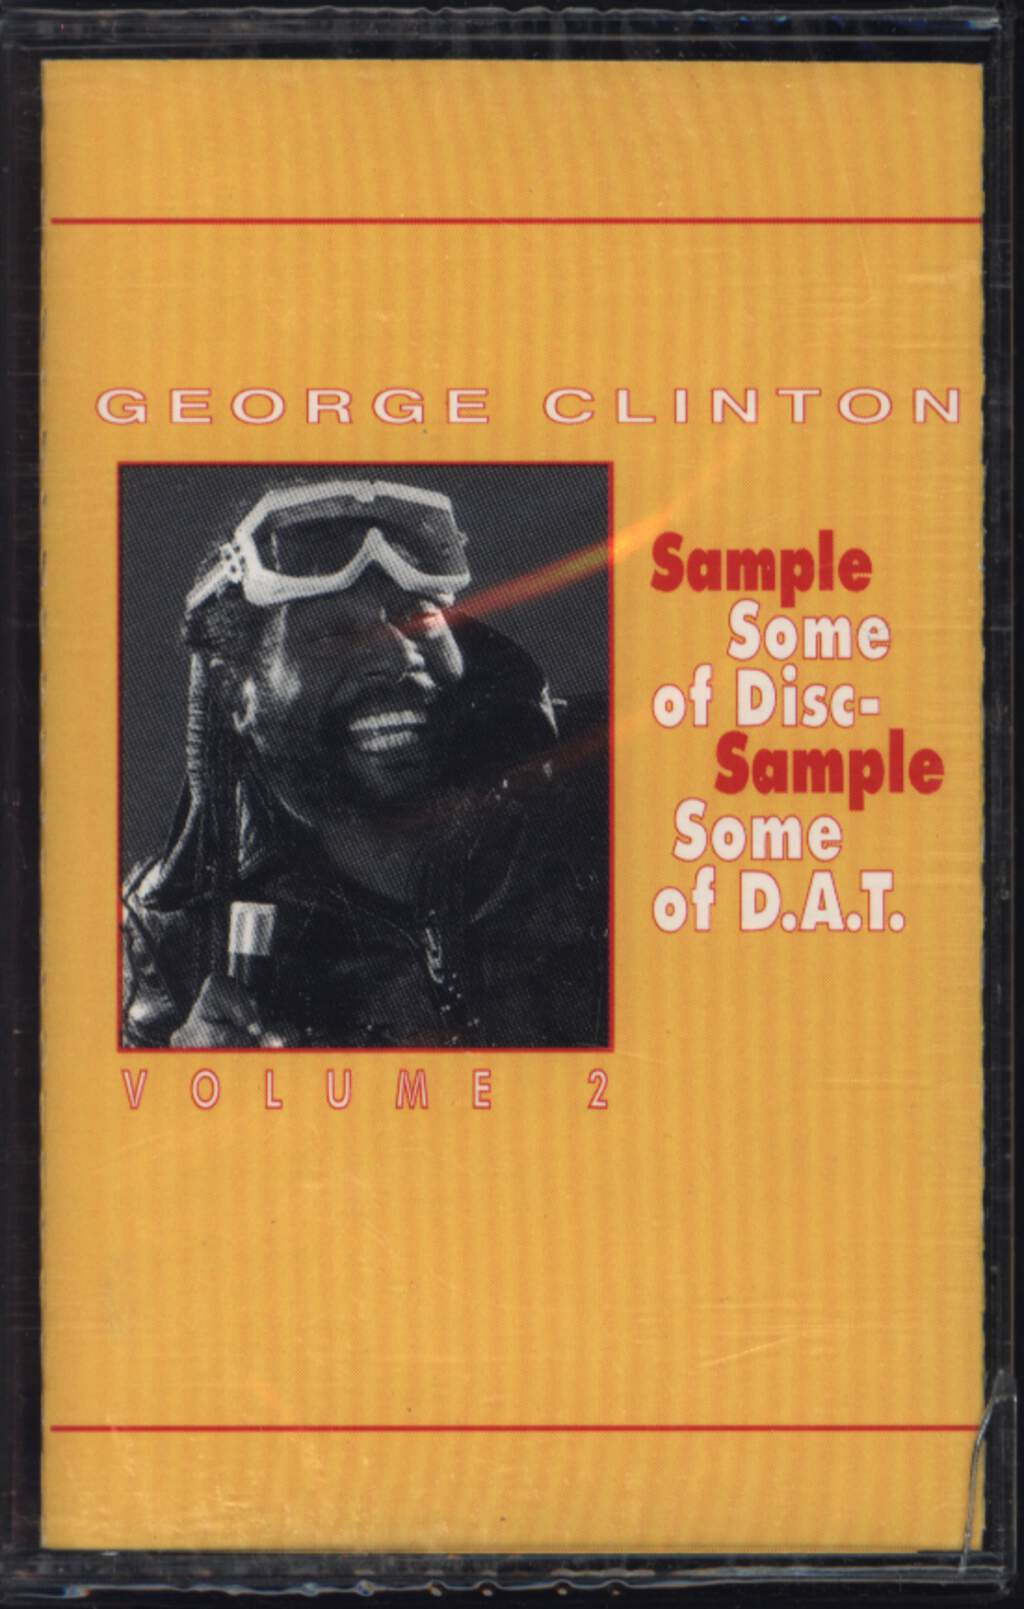 George Clinton: Sample Some Of Disc - Sample Some Of D.A.T. Volume 2, Compact Cassette